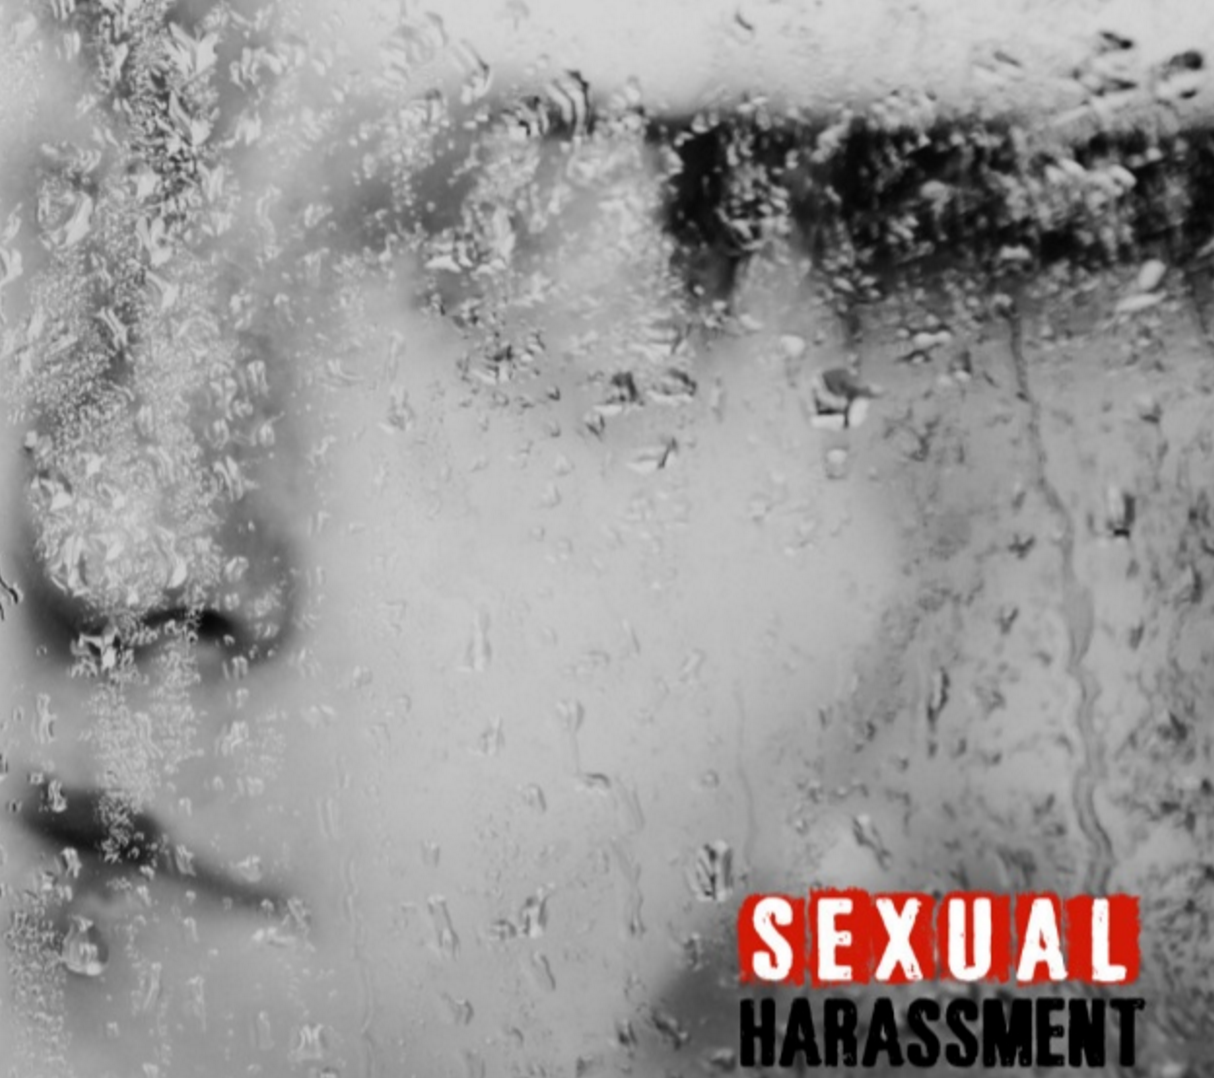 Screenshot from the cover of the free e-book: Sexual Harassment at Workplace in India : Let's Stop it Together by LawSikho.com (Click on the image to read the e-book on Slideshare)